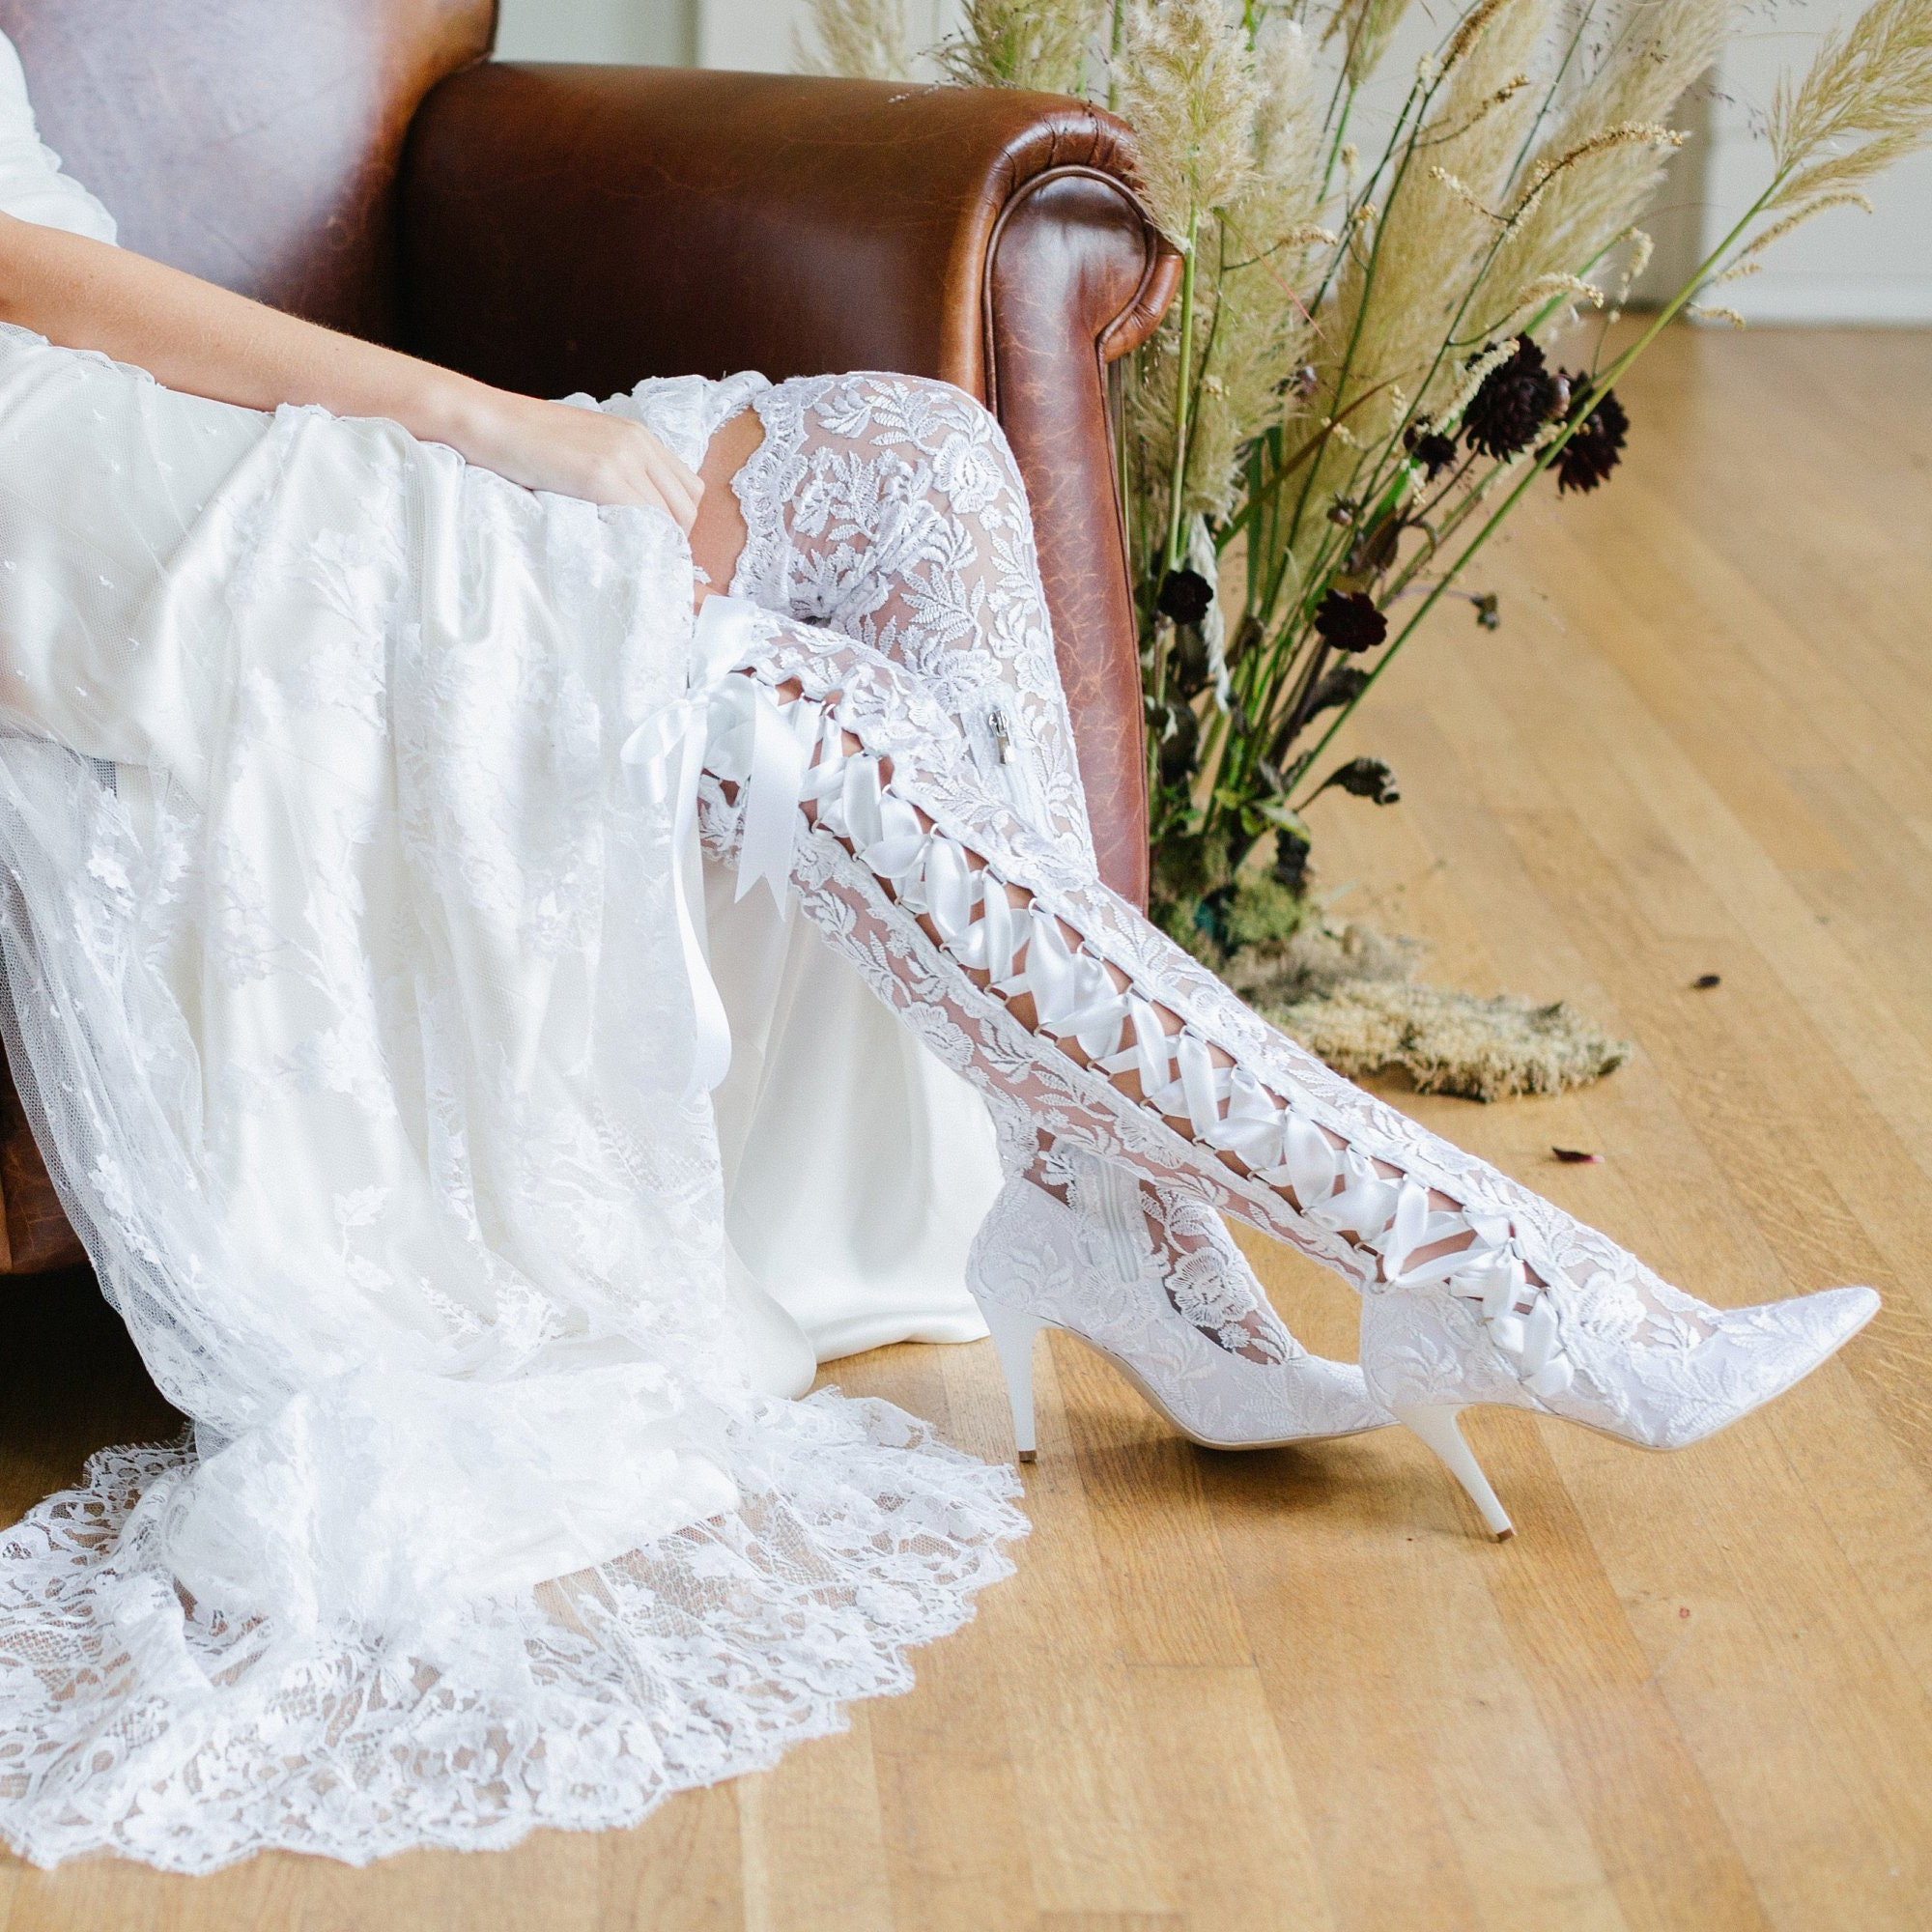 Blanco Lace Over Over Over The Knee Wedding  botas  - Pointed Toe Lace Bridal  botas  - Mid High Heel Vintage  botas  - House of Elliot Goodnight Sweetheart 428ae4